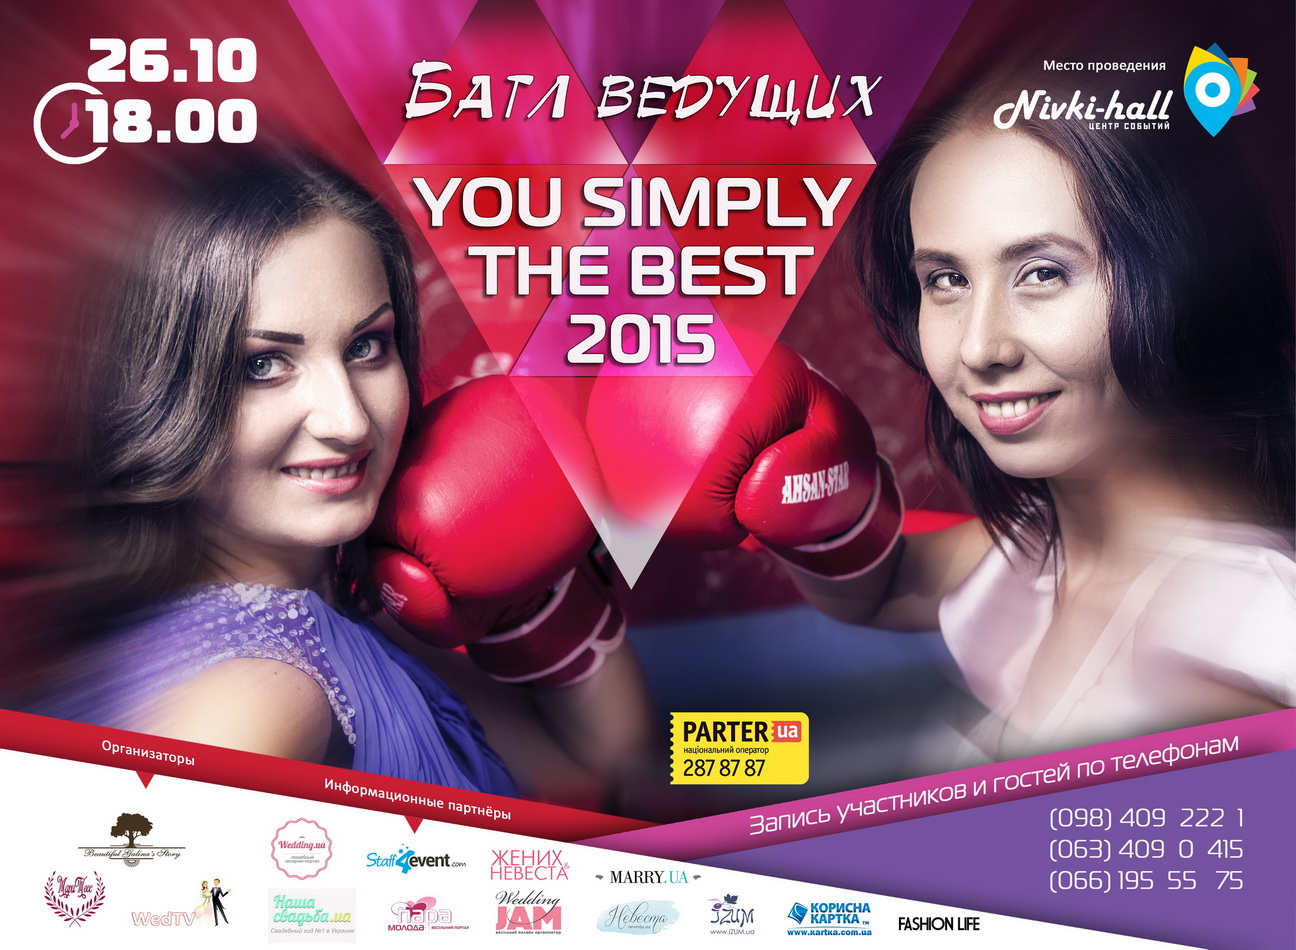 Батл ведущих «You simply the best 2015»